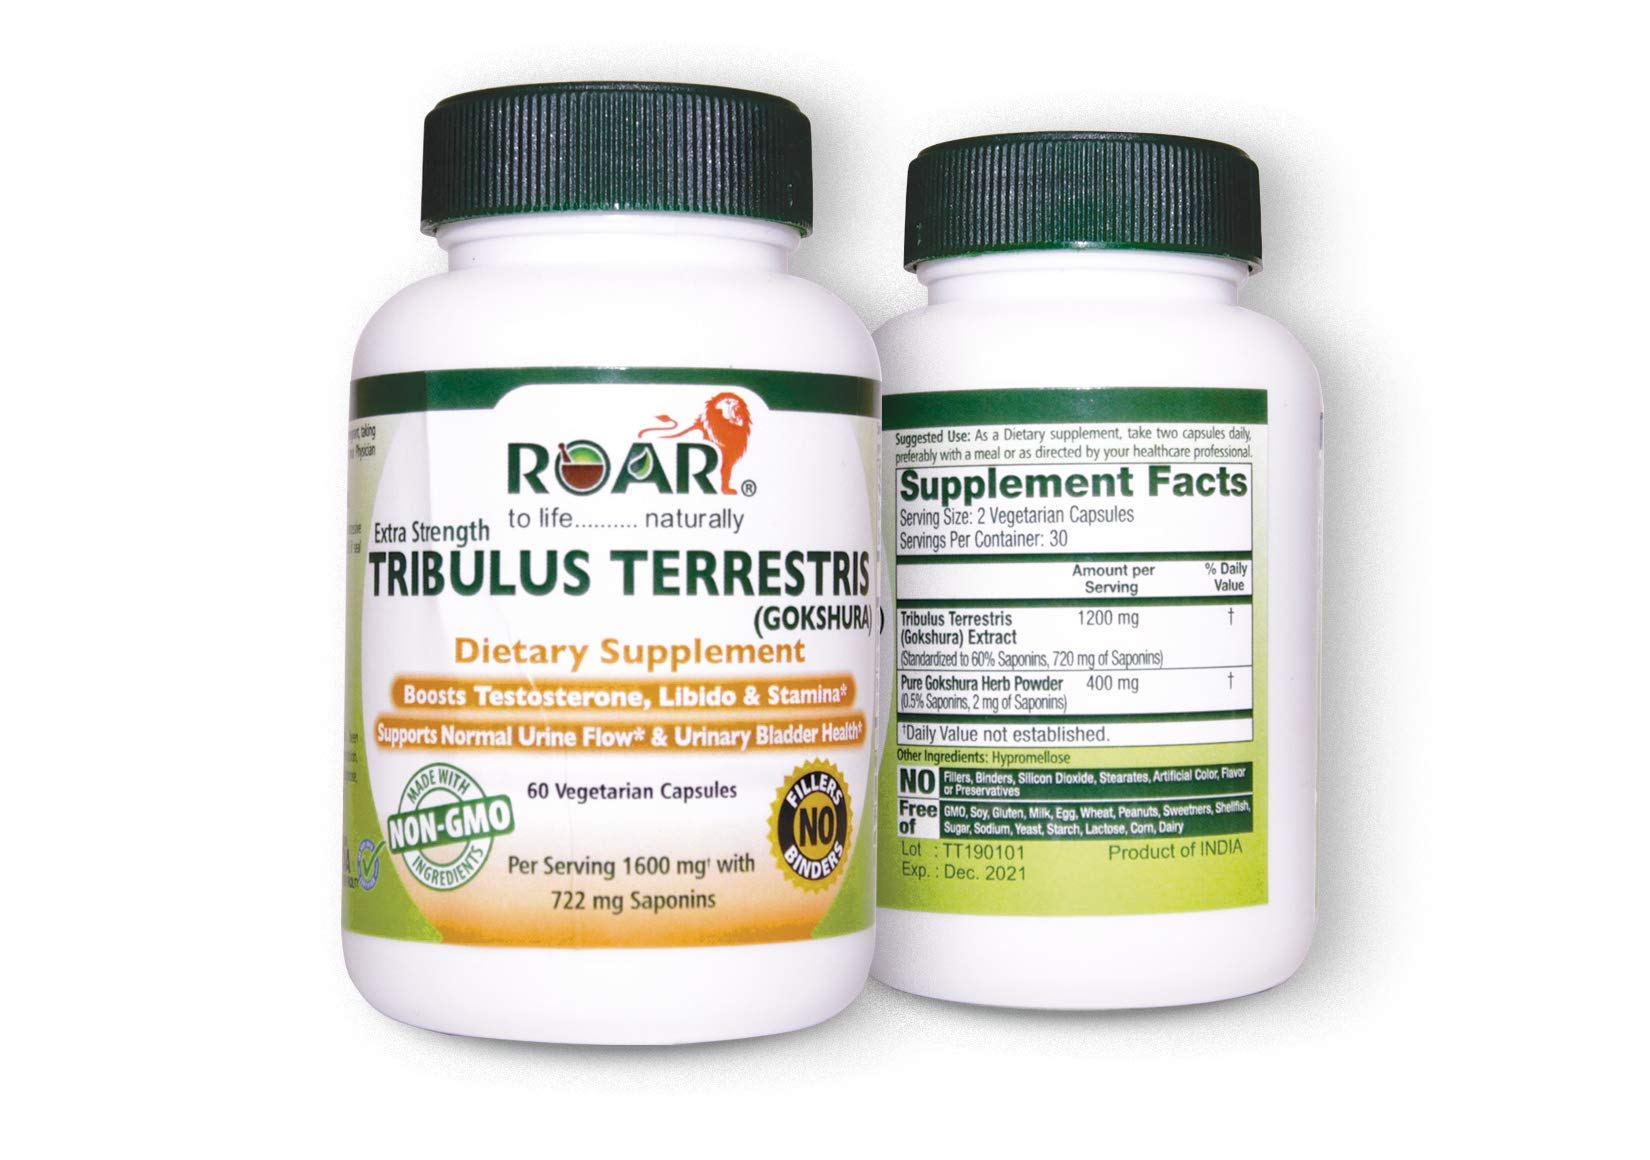 Roar Max Strength Tribulus Terrestris (Gokshura) 1600mg Vegetarian Capsules (722 mg Saponins) for Libido, Stamina & Male Energy with Urinary Support.